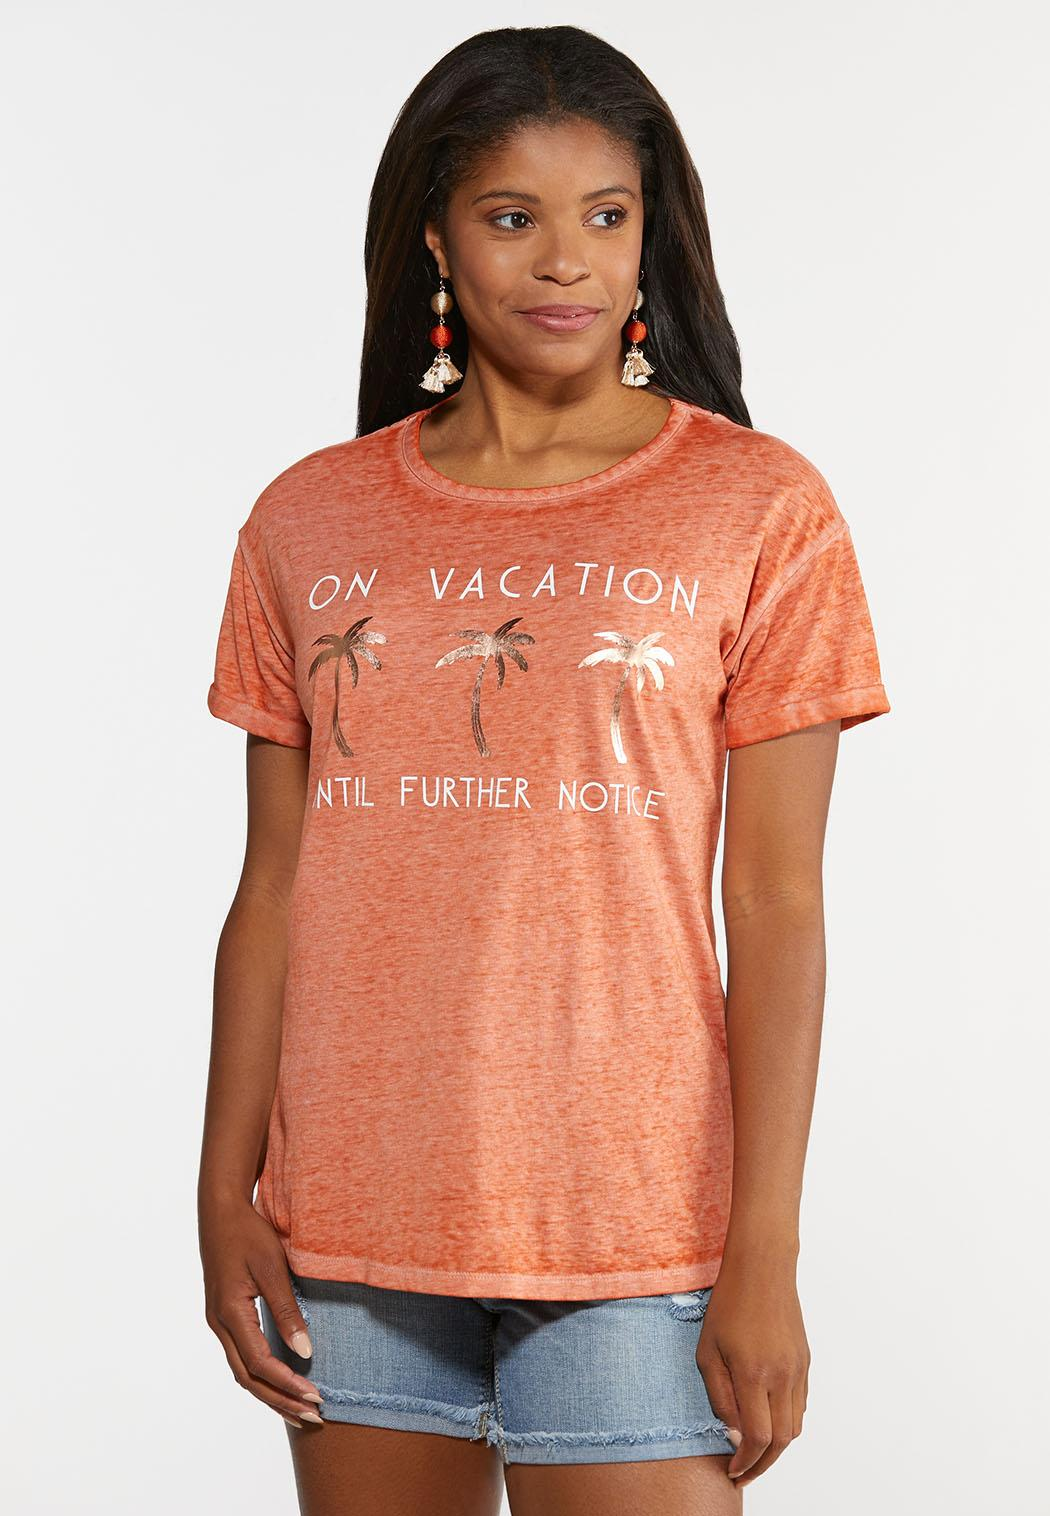 On Vacation Until Further Notice Tee